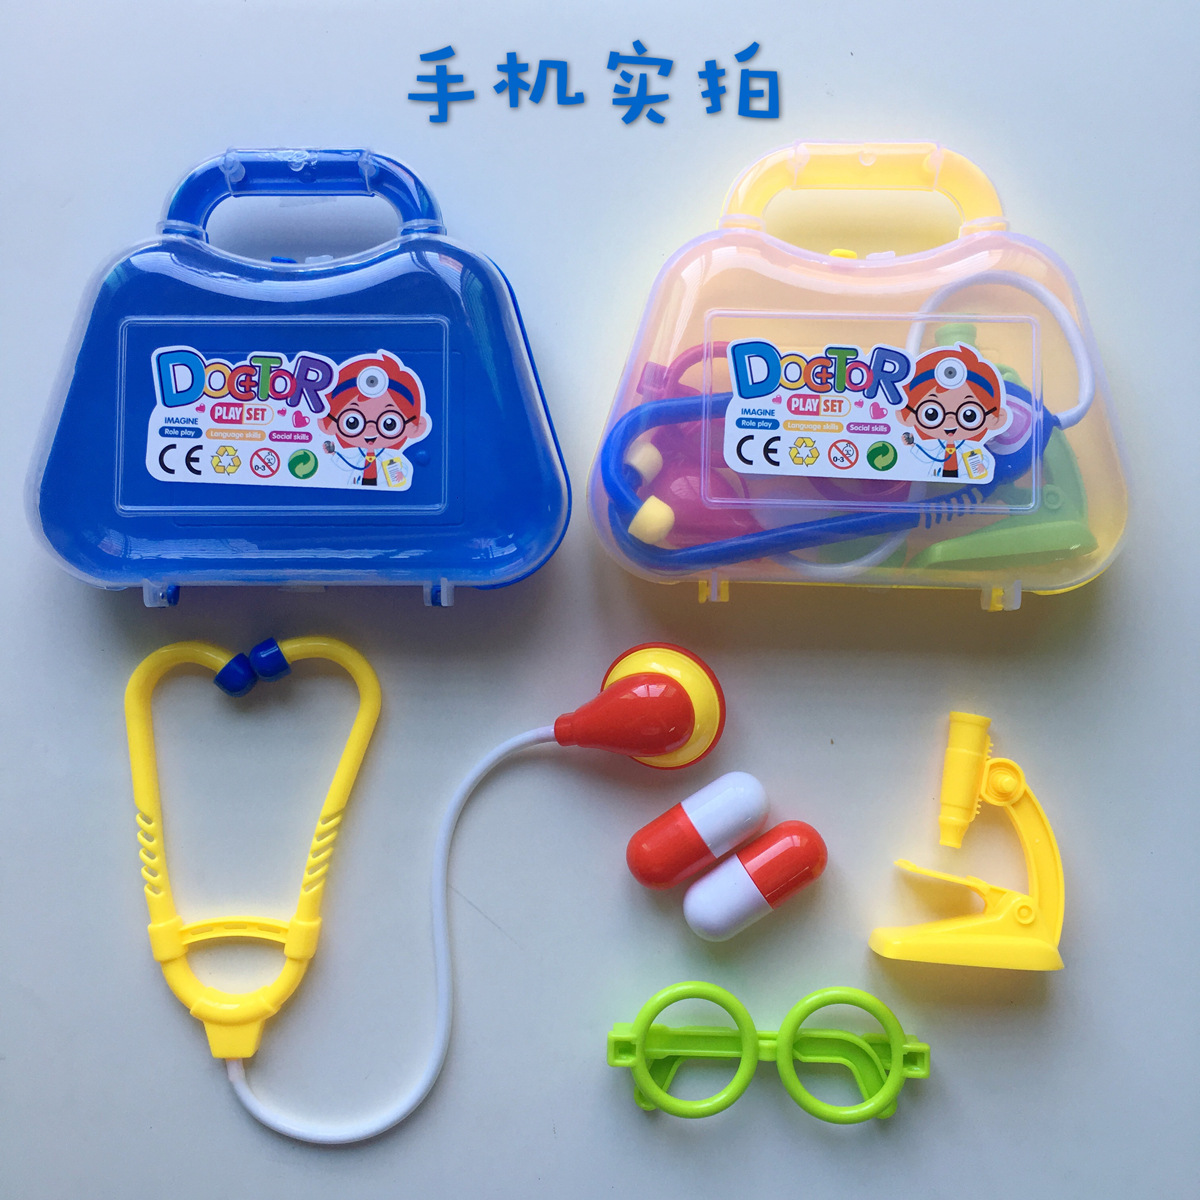 Child Play House Doctor Toy Medical Kit Portable Box Stethoscope Toy..1 Random Delivery